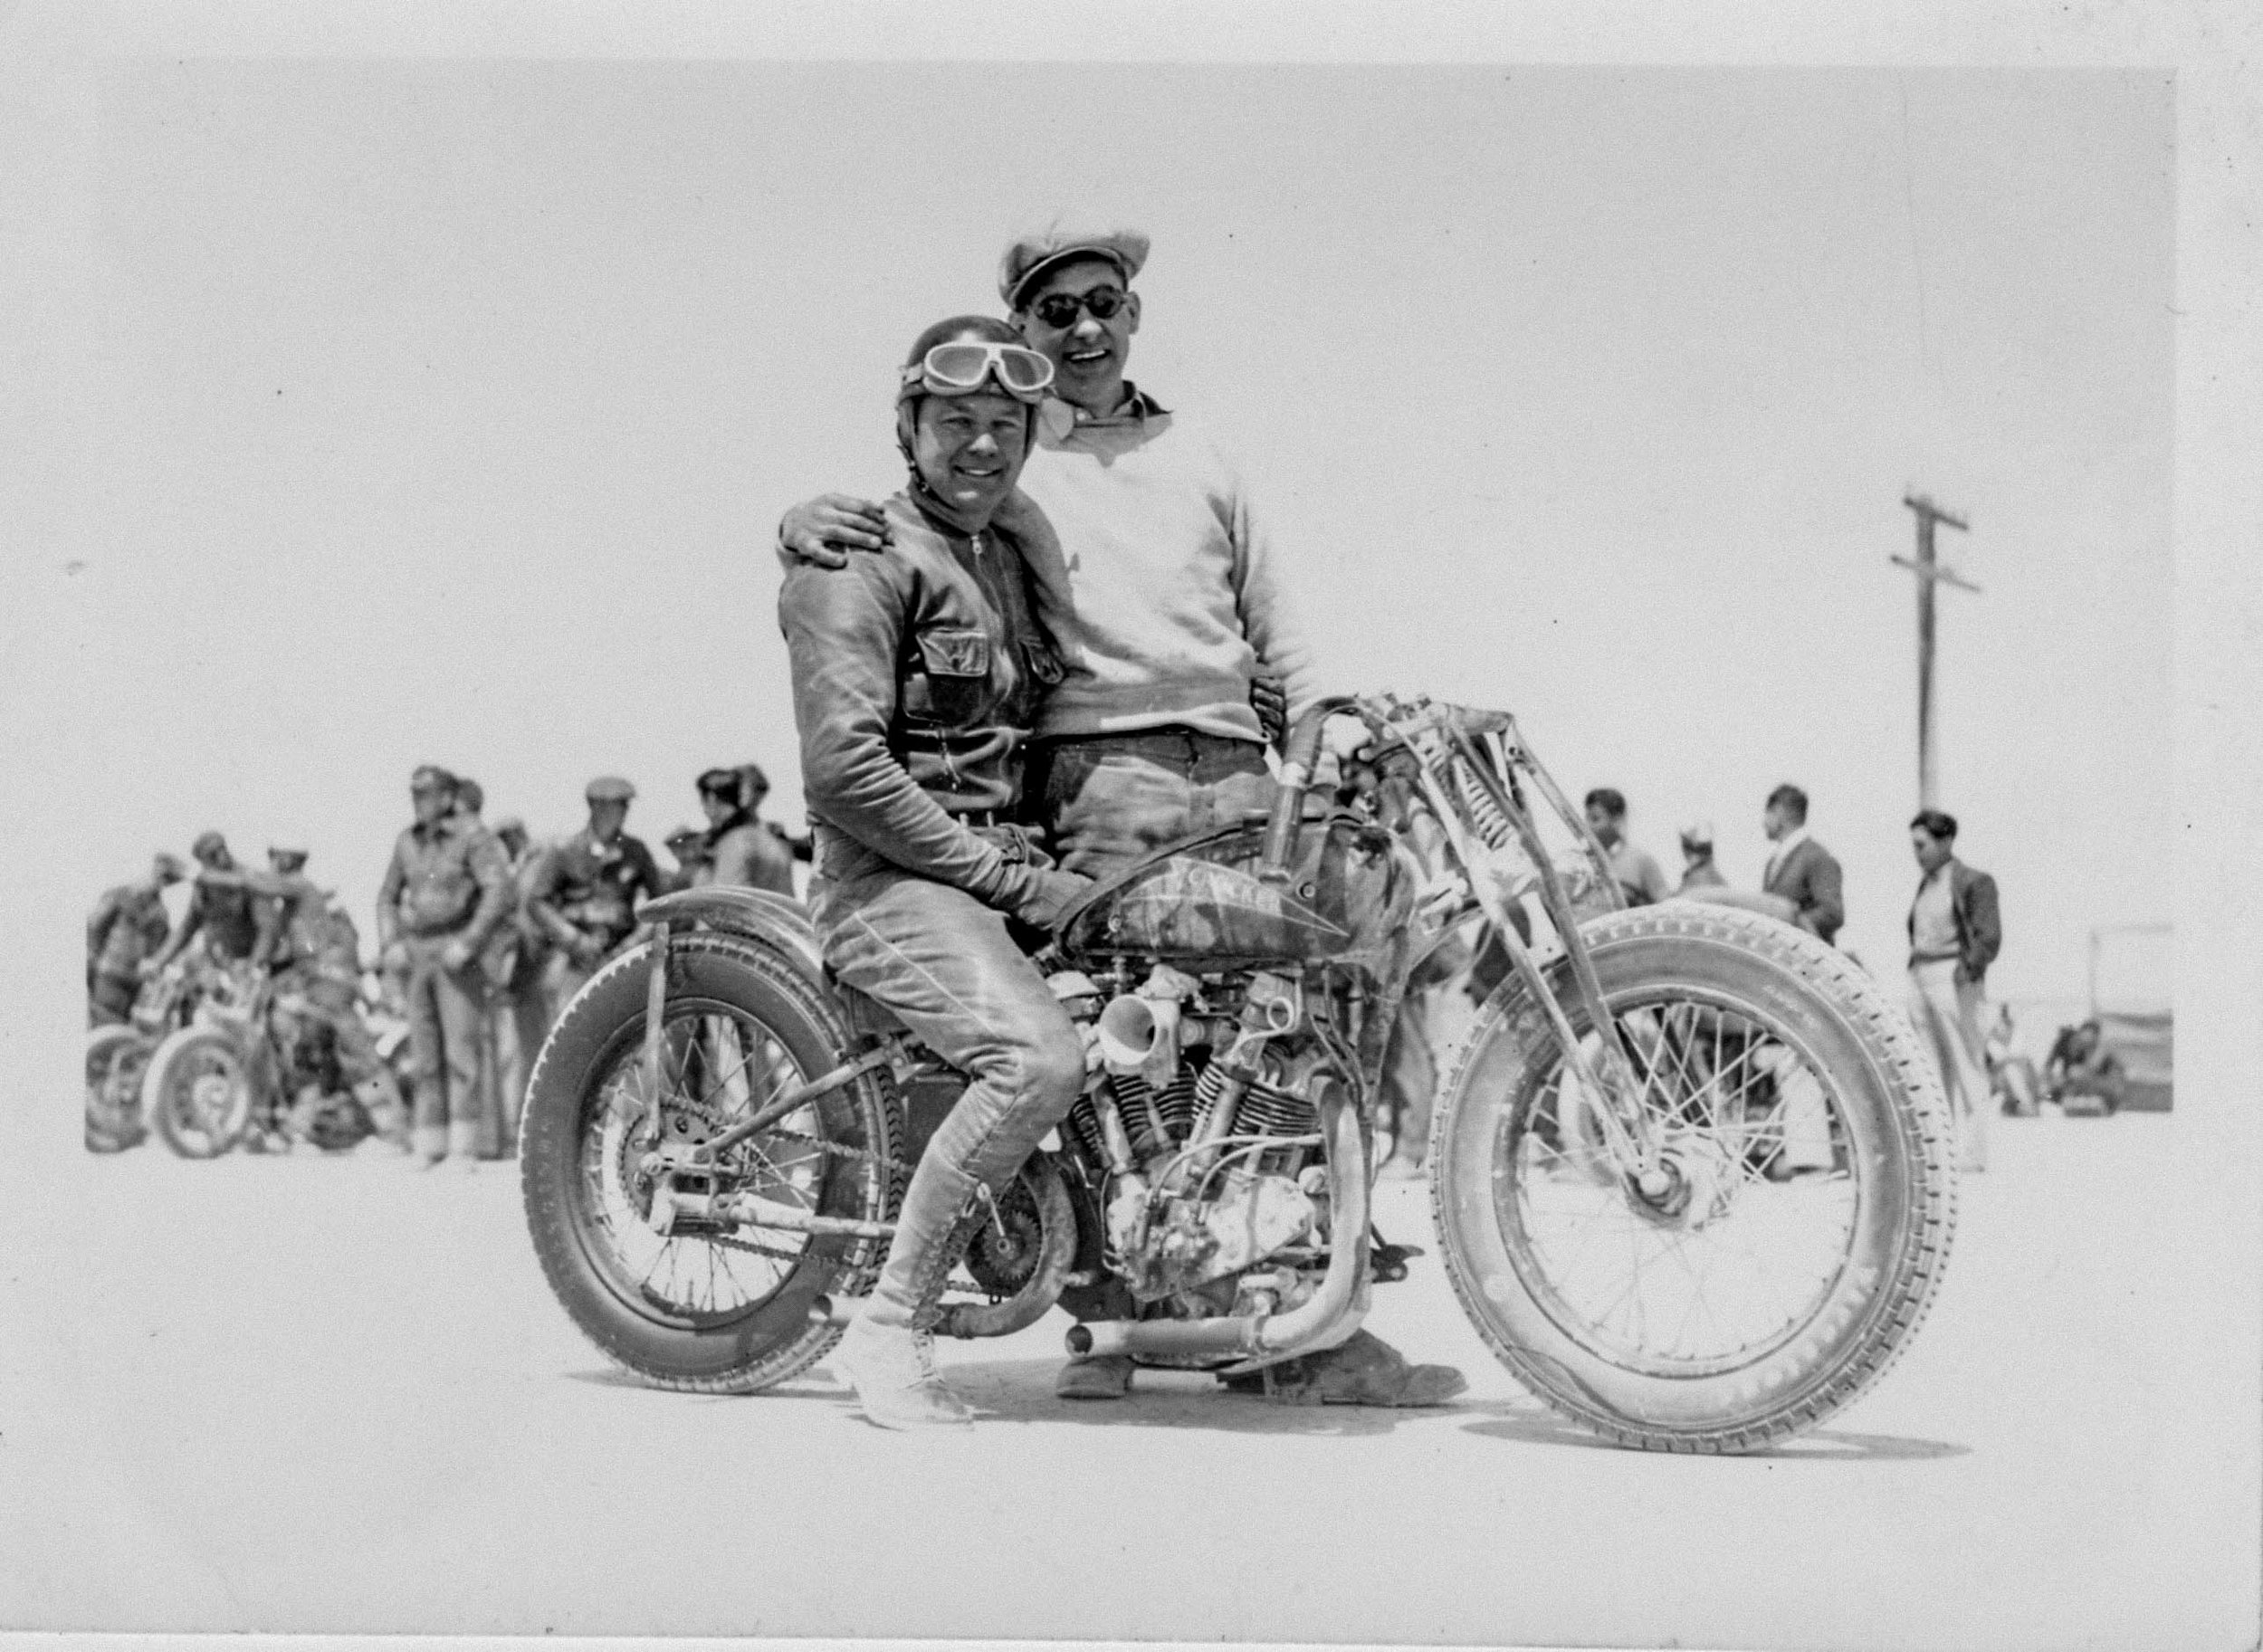 Crocker History - Albert Crocker (1882–1961) was an American inventor and the founder of Crocker Motorcycles. His innovations had a substantial influence on the motorcycle and racing business.